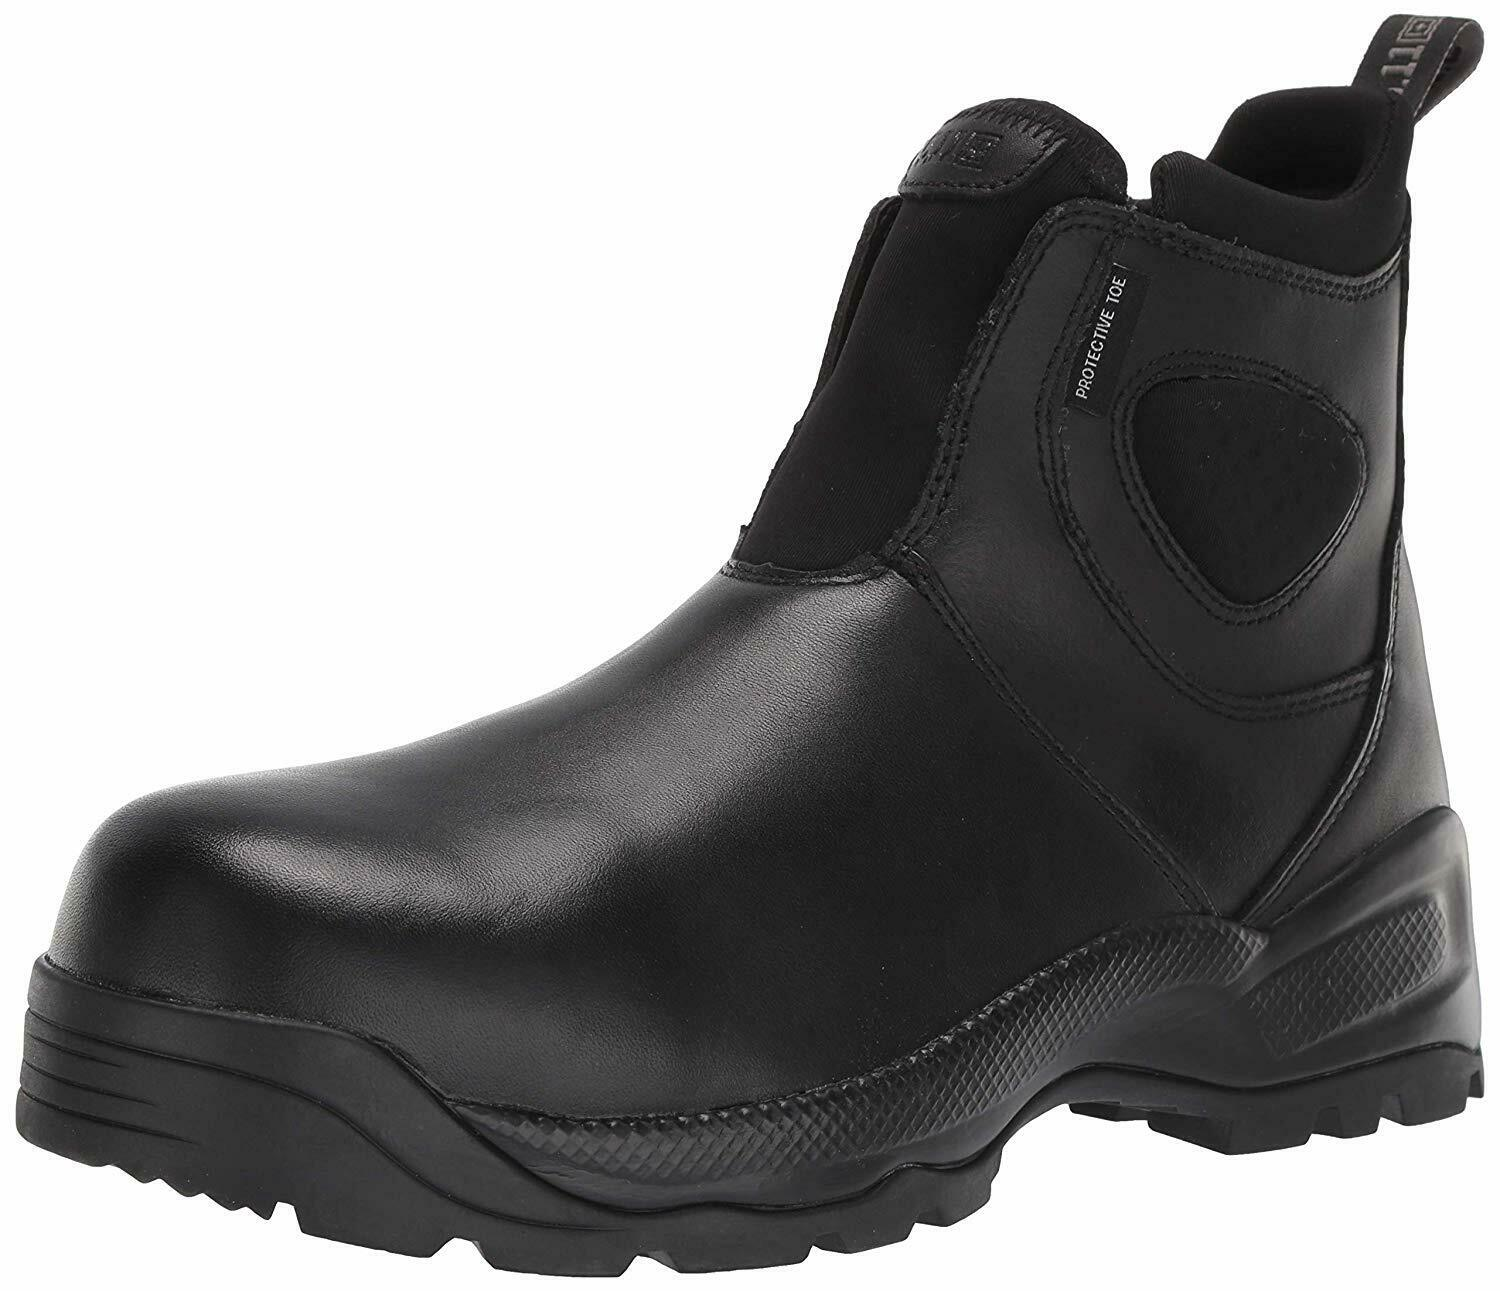 5.11 Men's Company CST-U Boot, Slip Resistant, Style 12033, Med-Wide